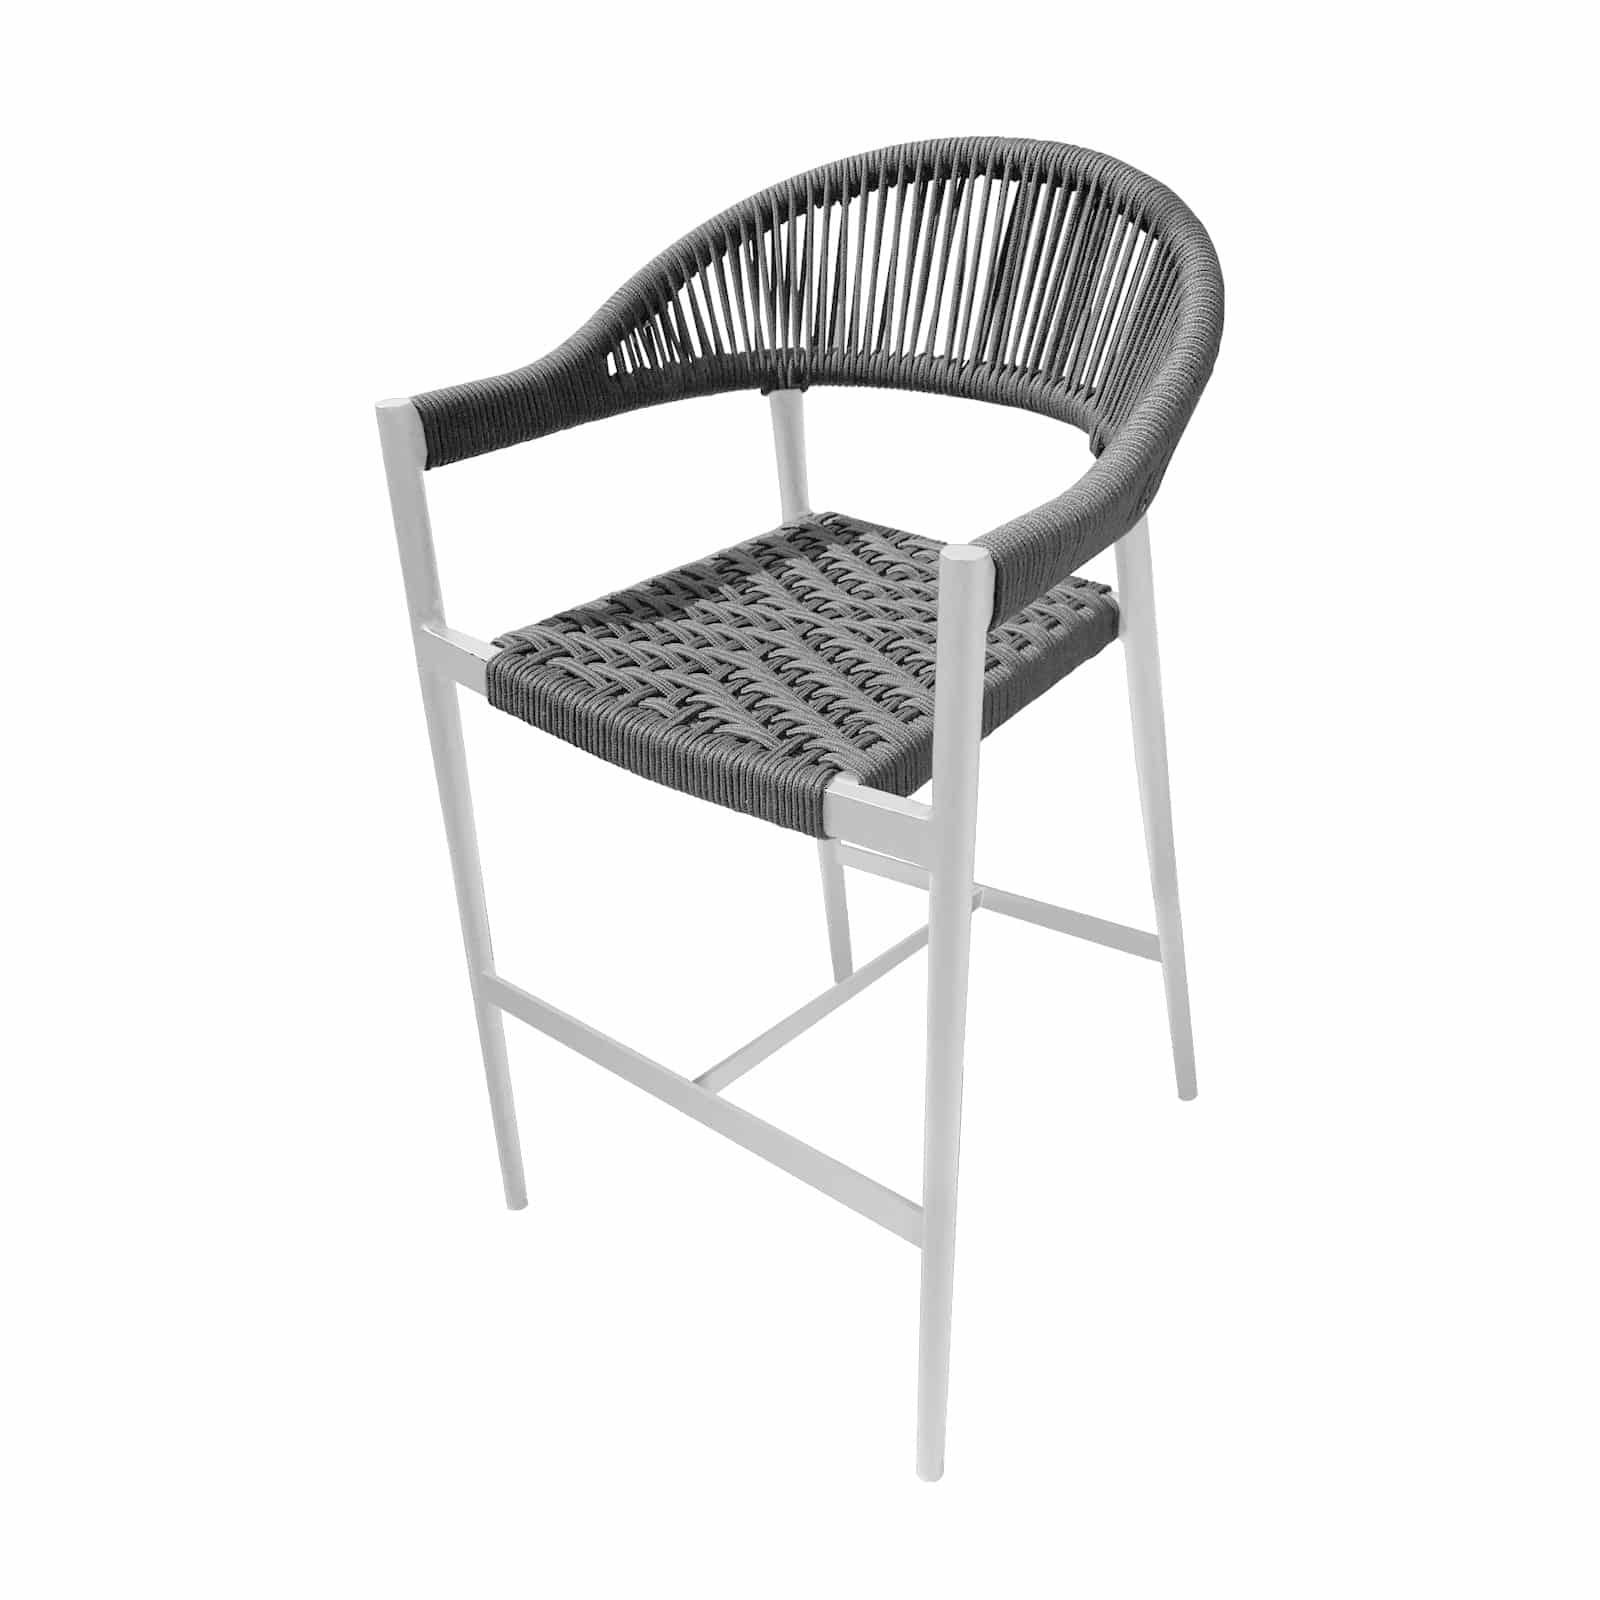 Source Furniture Source Furniture Skye Bar Arm Chair Bar Arm Chair - Rattan Imports